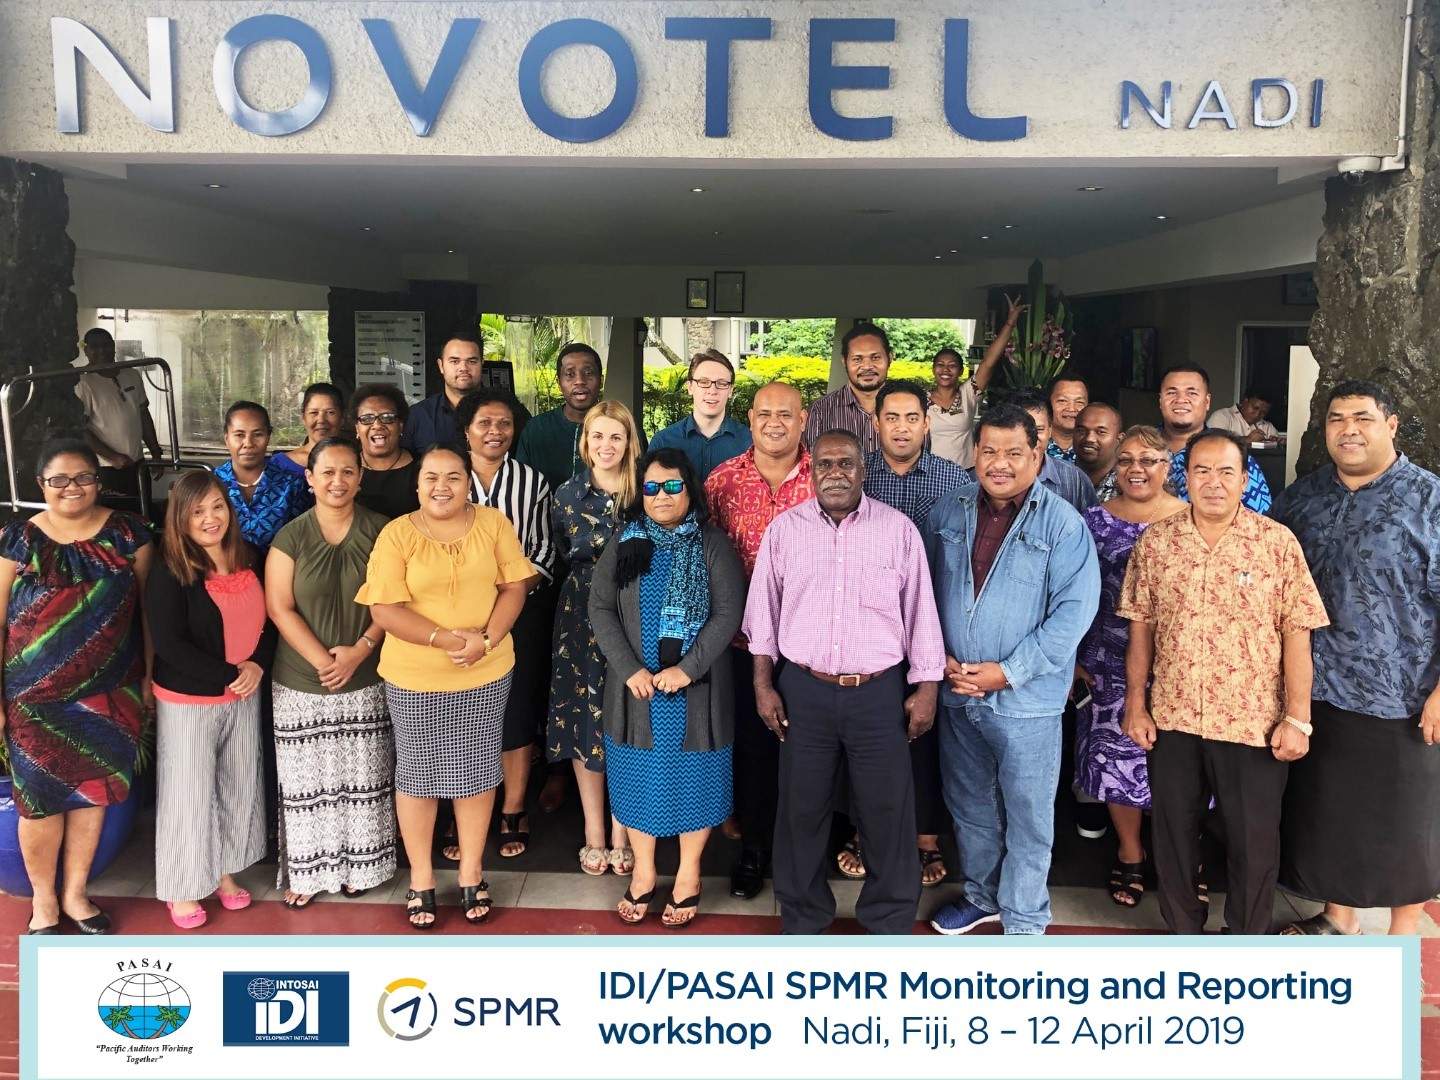 SPMR M&R Fiji April 2019 offical photo.jpg